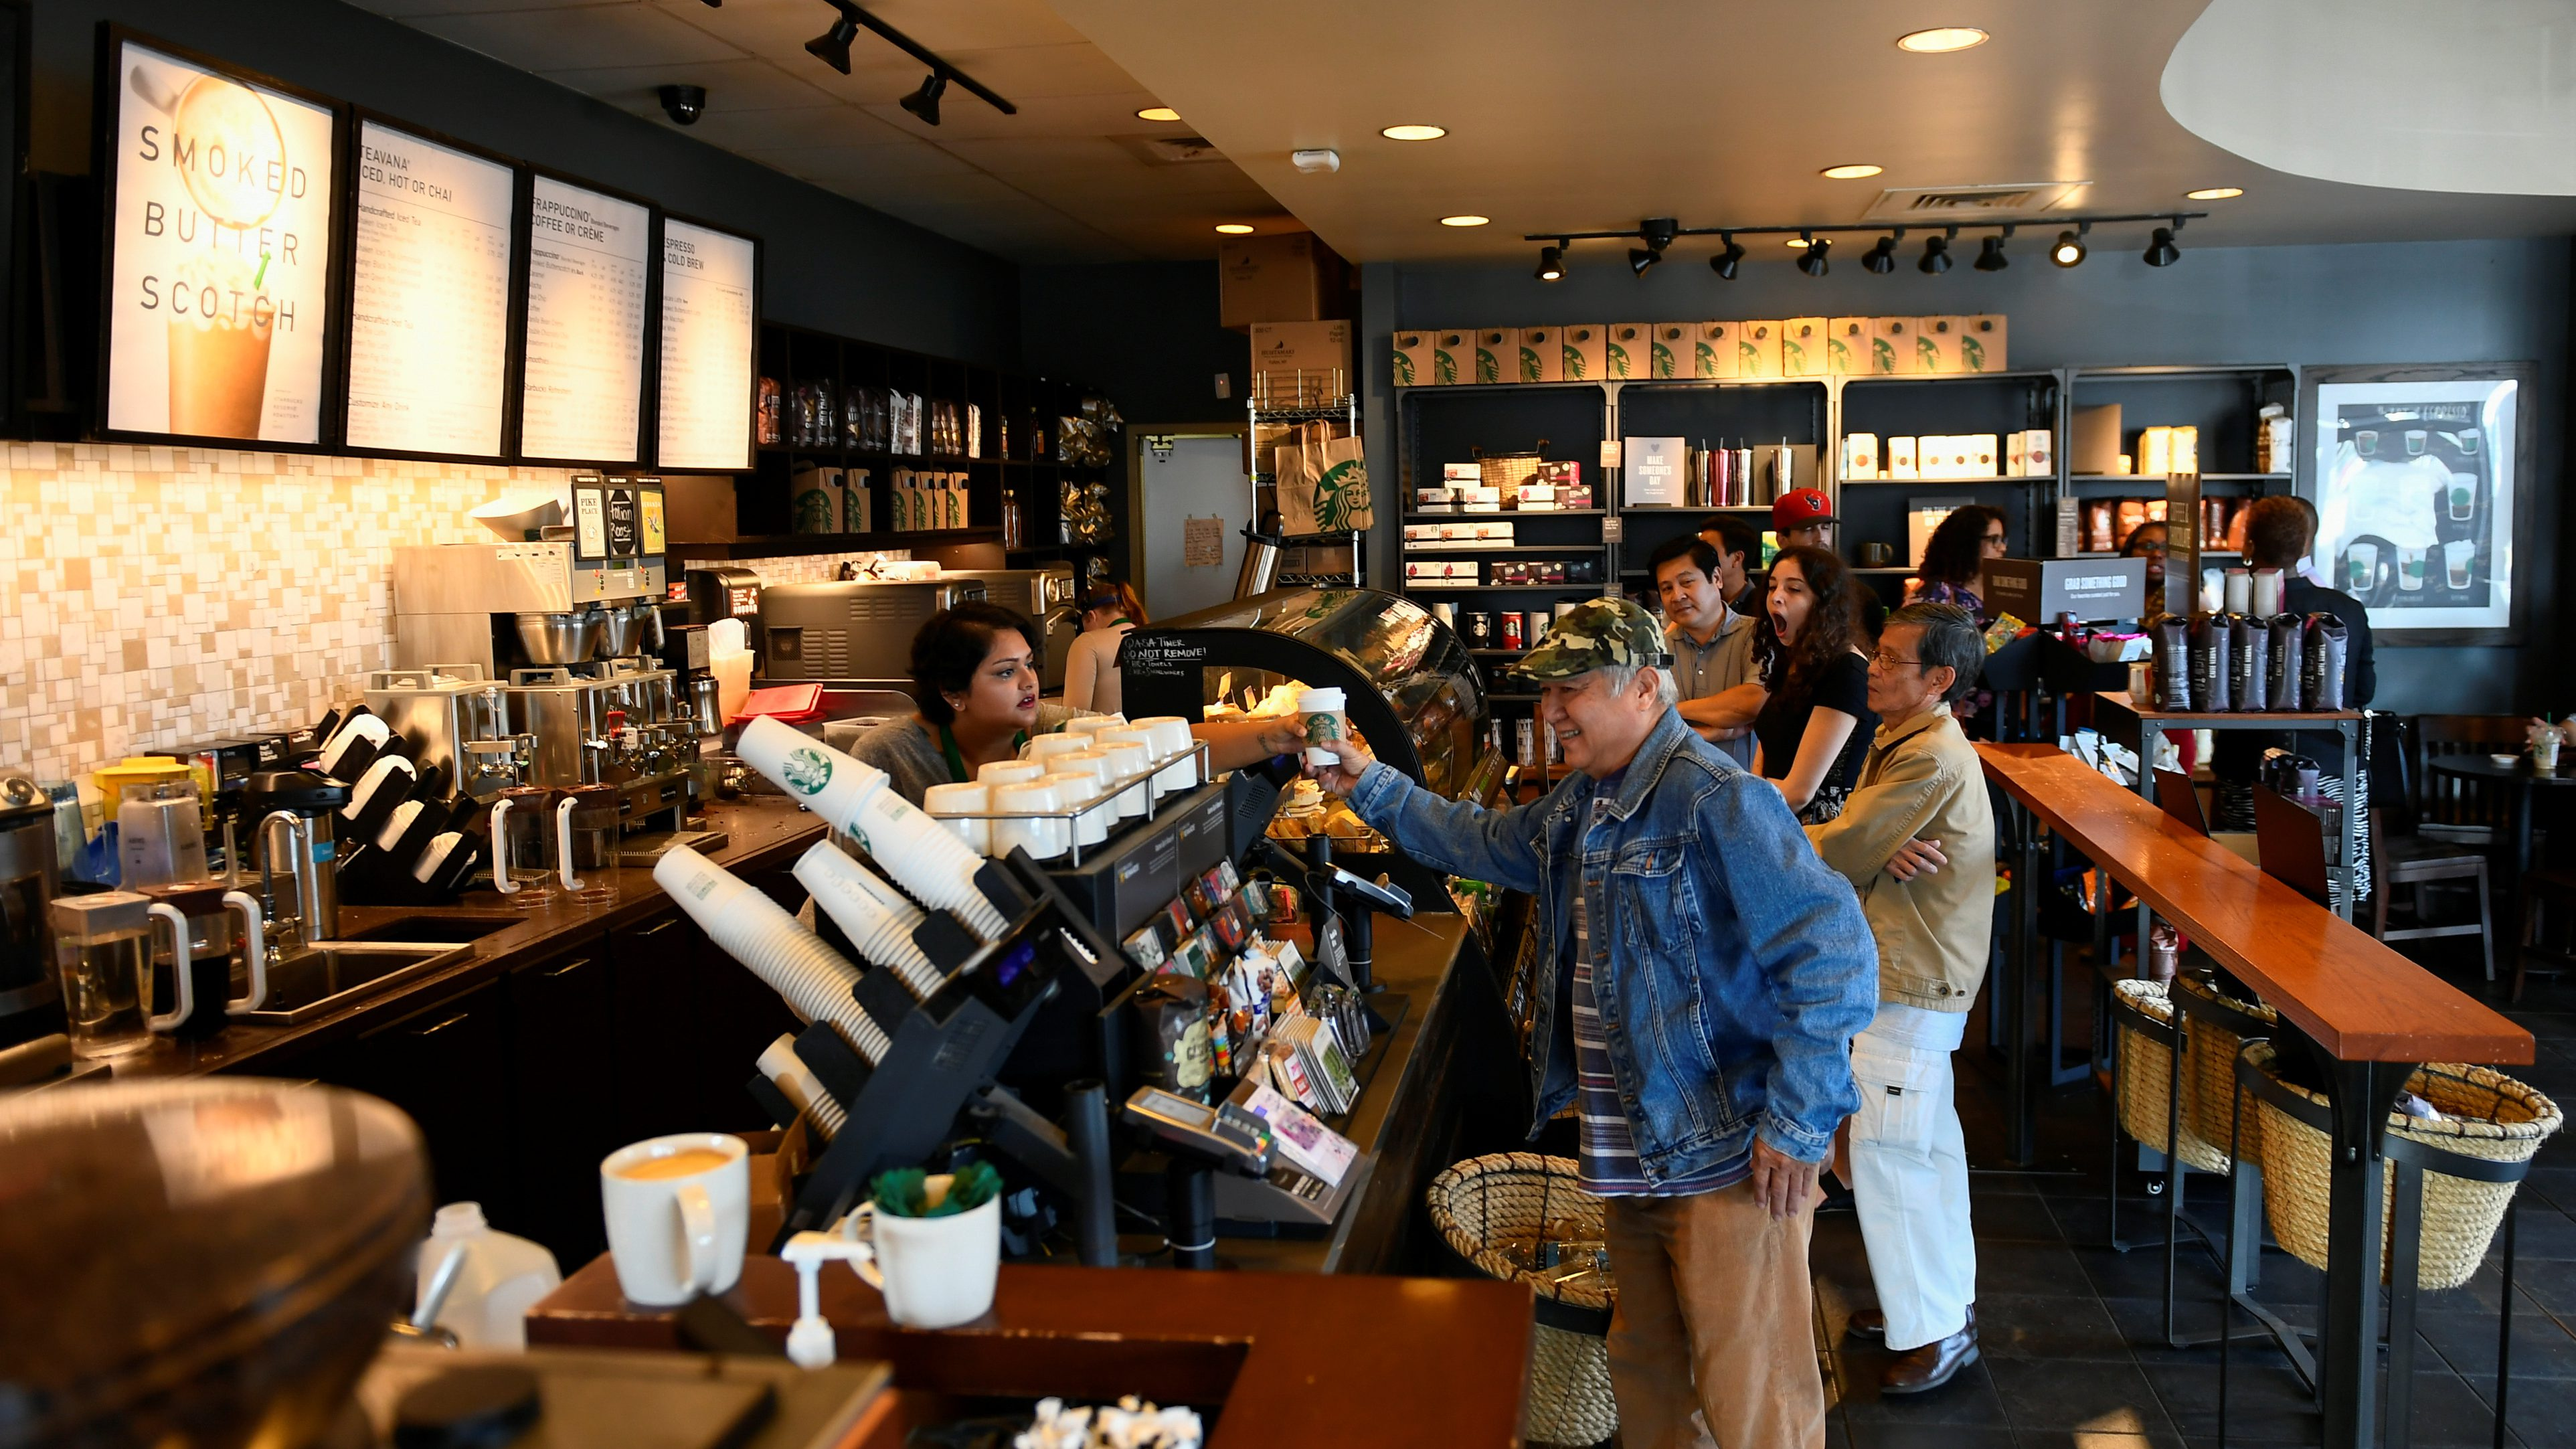 Customers stand in line at a Starbucks coffeehouse in Austin, Texas, U.S., February 11, 2017. Picture taken February 11, 2017.  RTSY89J